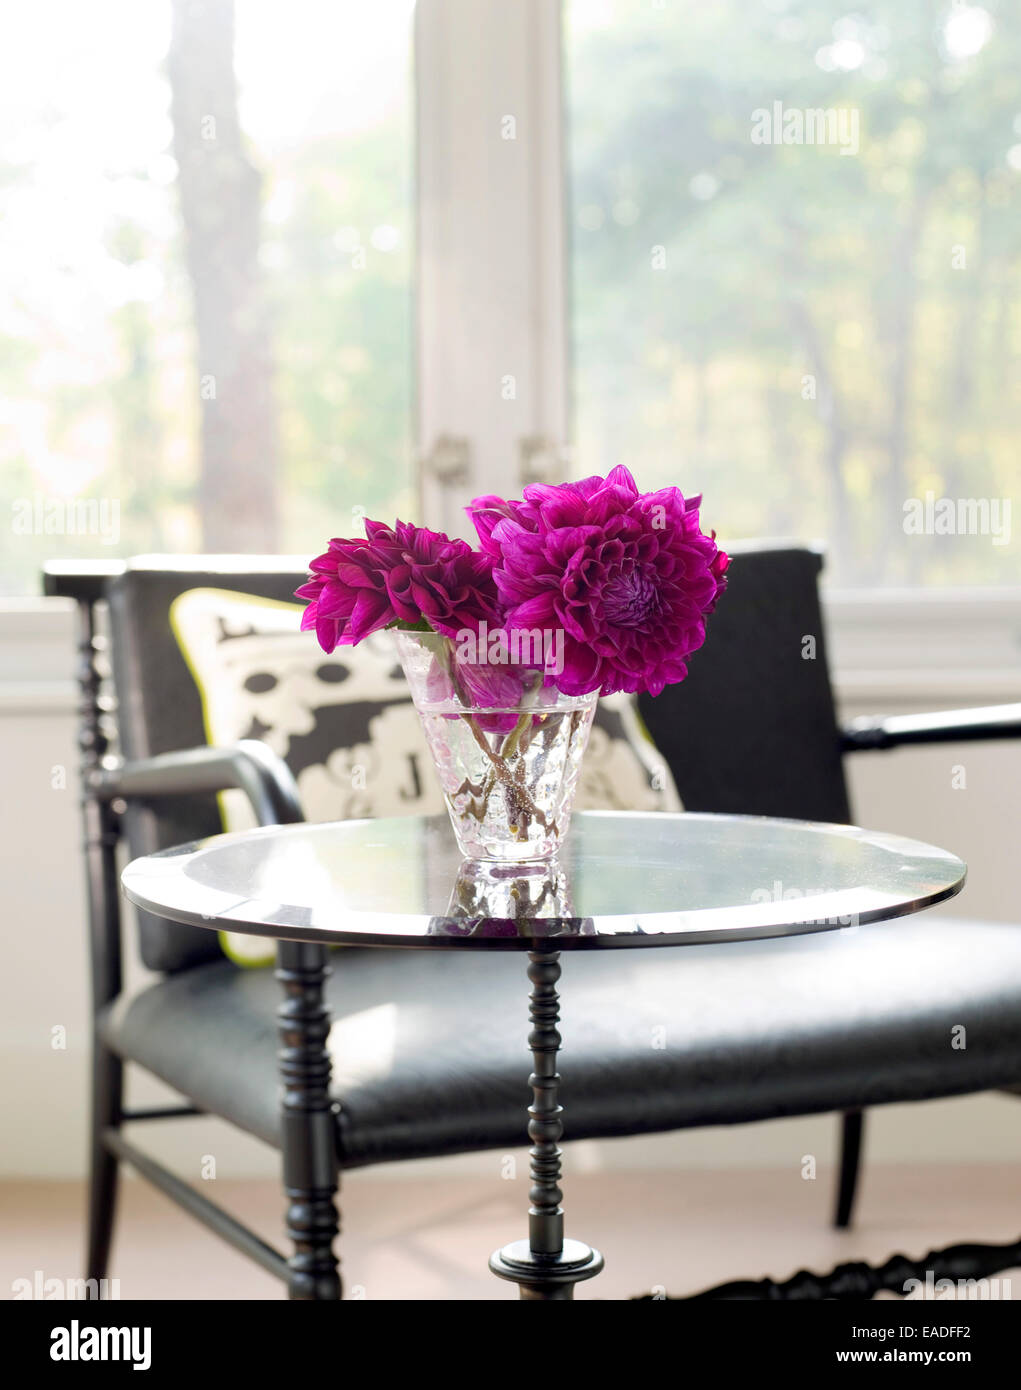 Dalias On a table at home - Stock Image